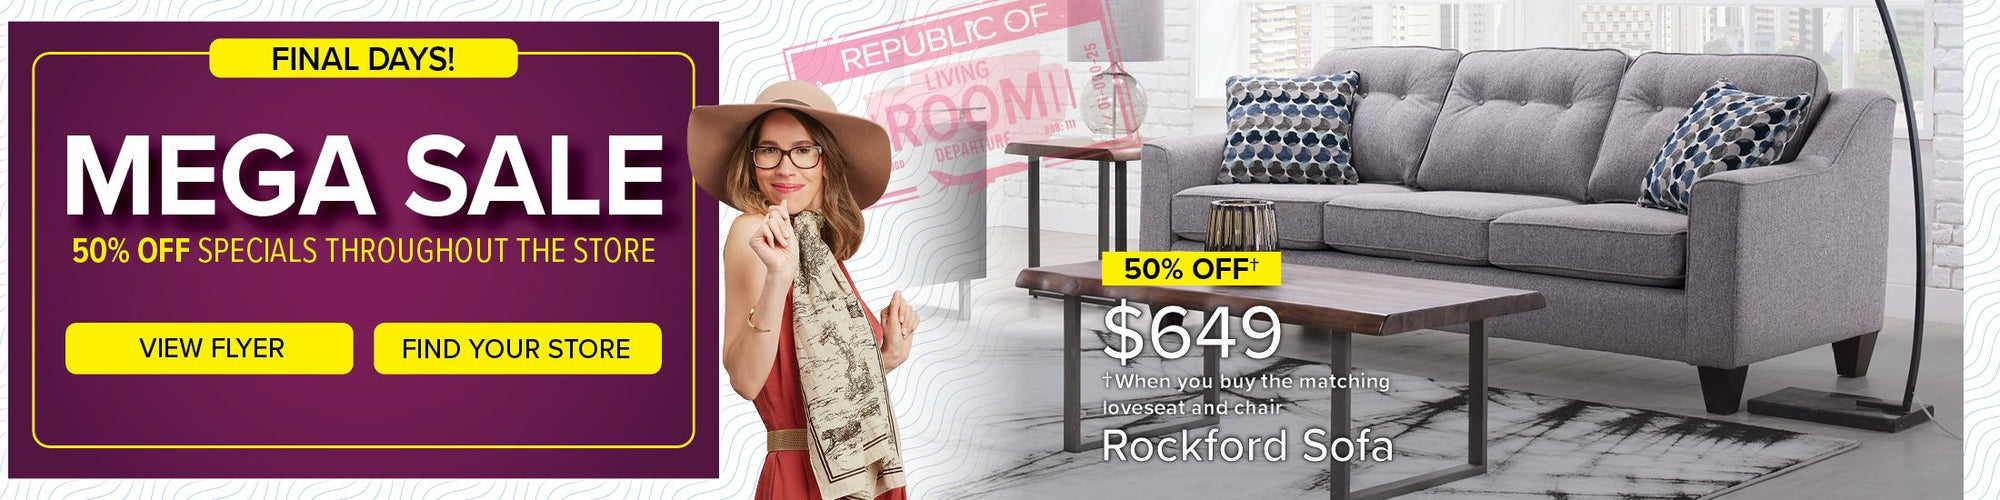 Final Days. 50/50 Sale. 50% Off specials & take 50 months to pay. View Flyer. Find Your Store. 50% Off $649 When you buy the matching loveseat and chair. Rockford Sofa